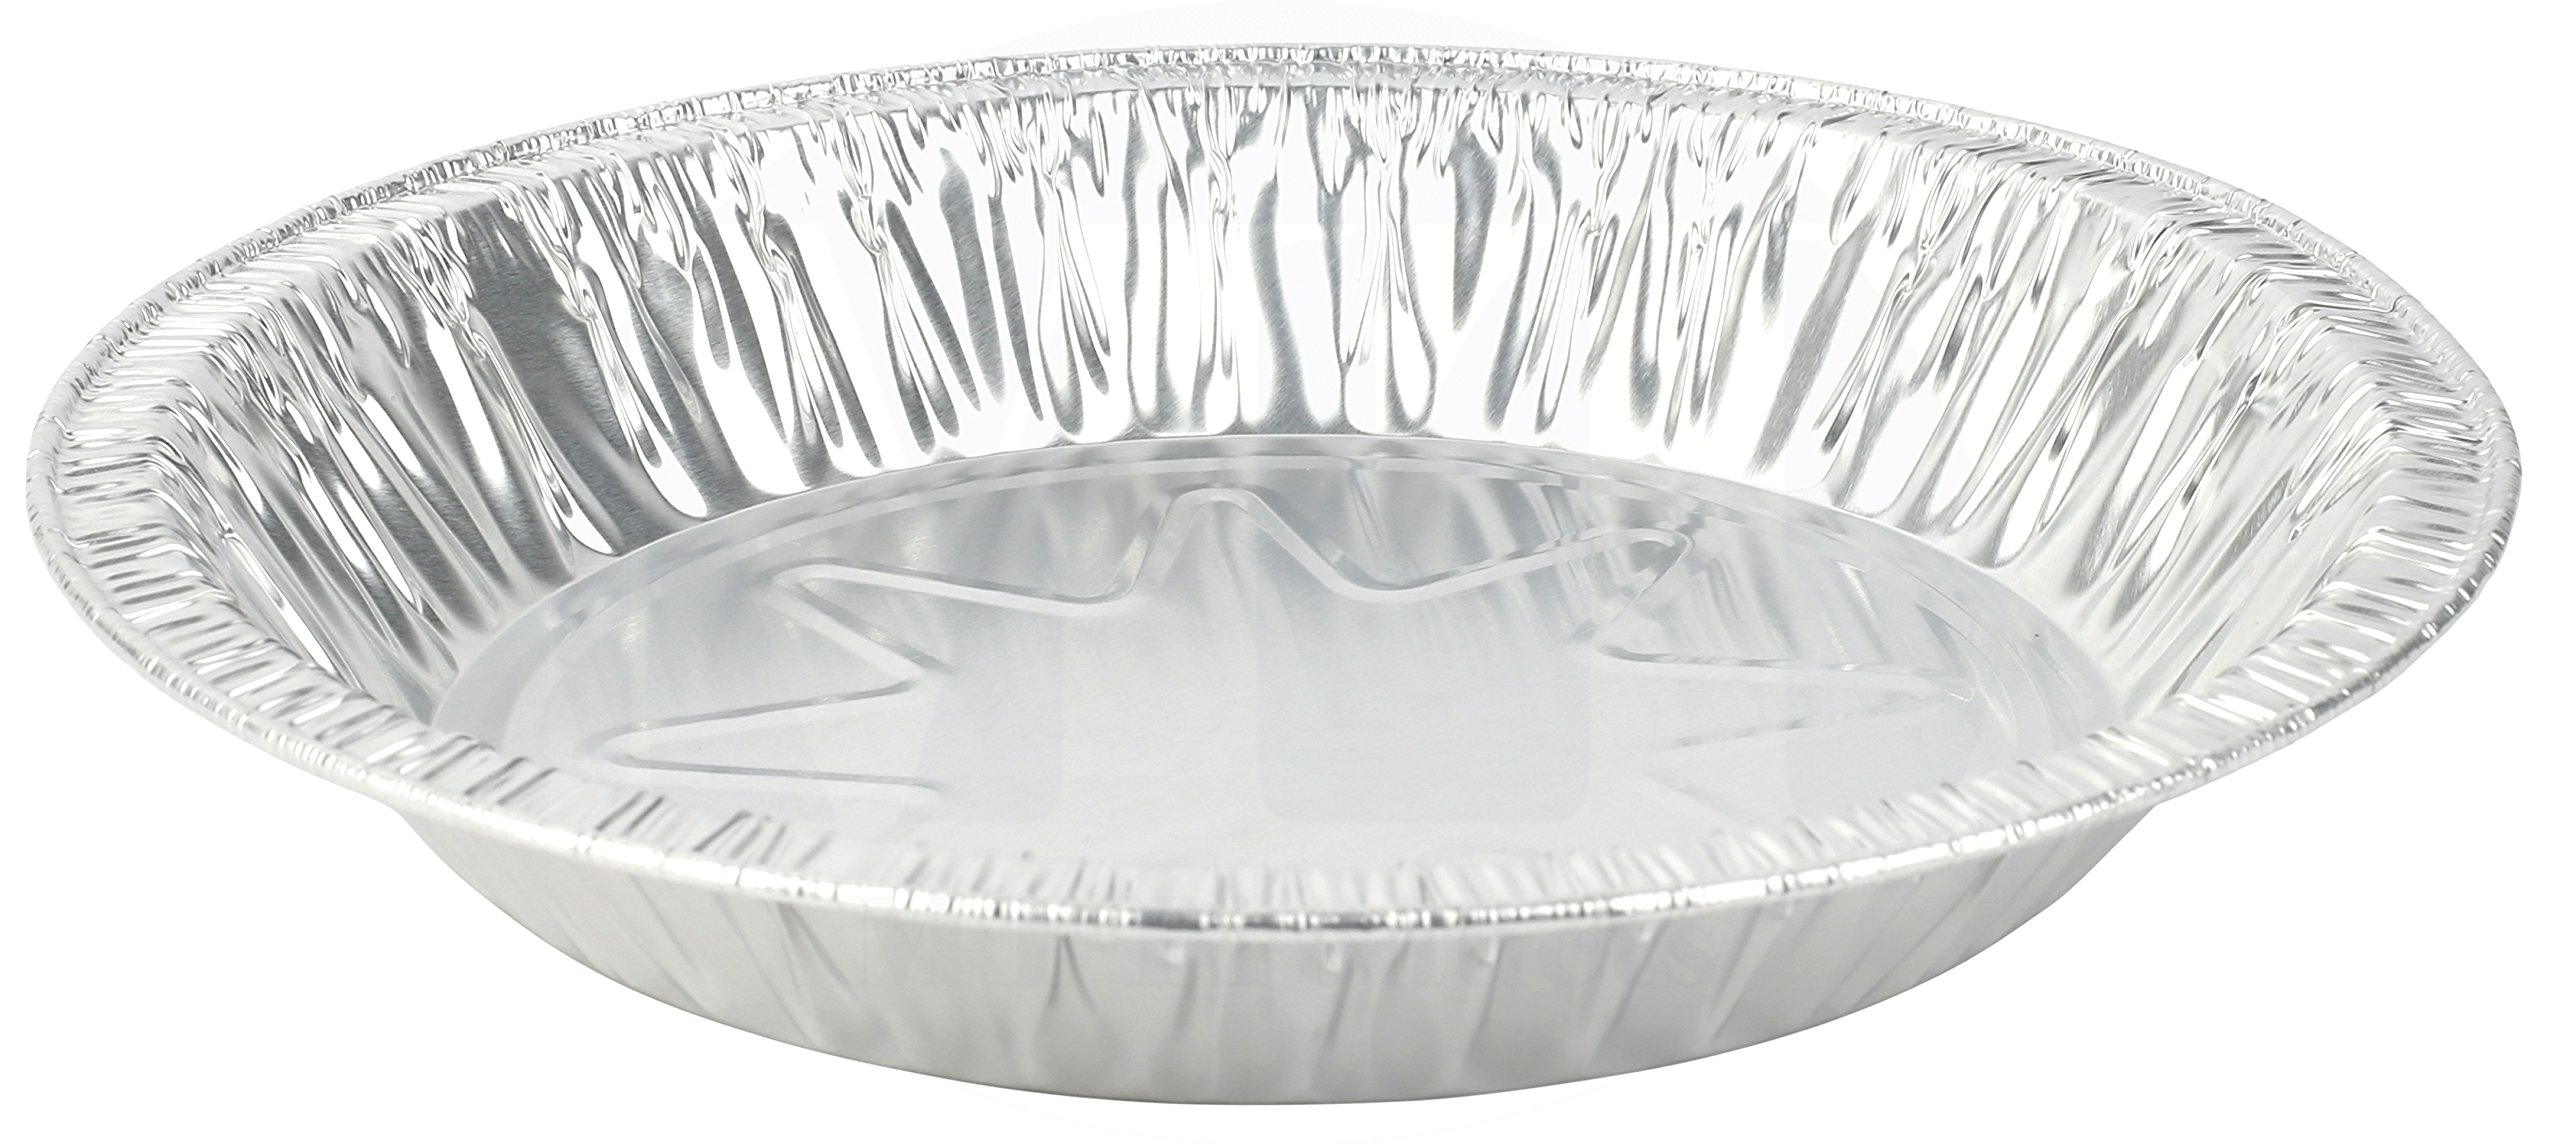 MT Products 8 Inch Outer Rim Disposable Aluminum Foil Tart/Pie Pan 1.25'' Deep - Inside Measures 7 inches x 1.25 inches -(Thicker 45 Gauge) (35 Pieces) by MT Products